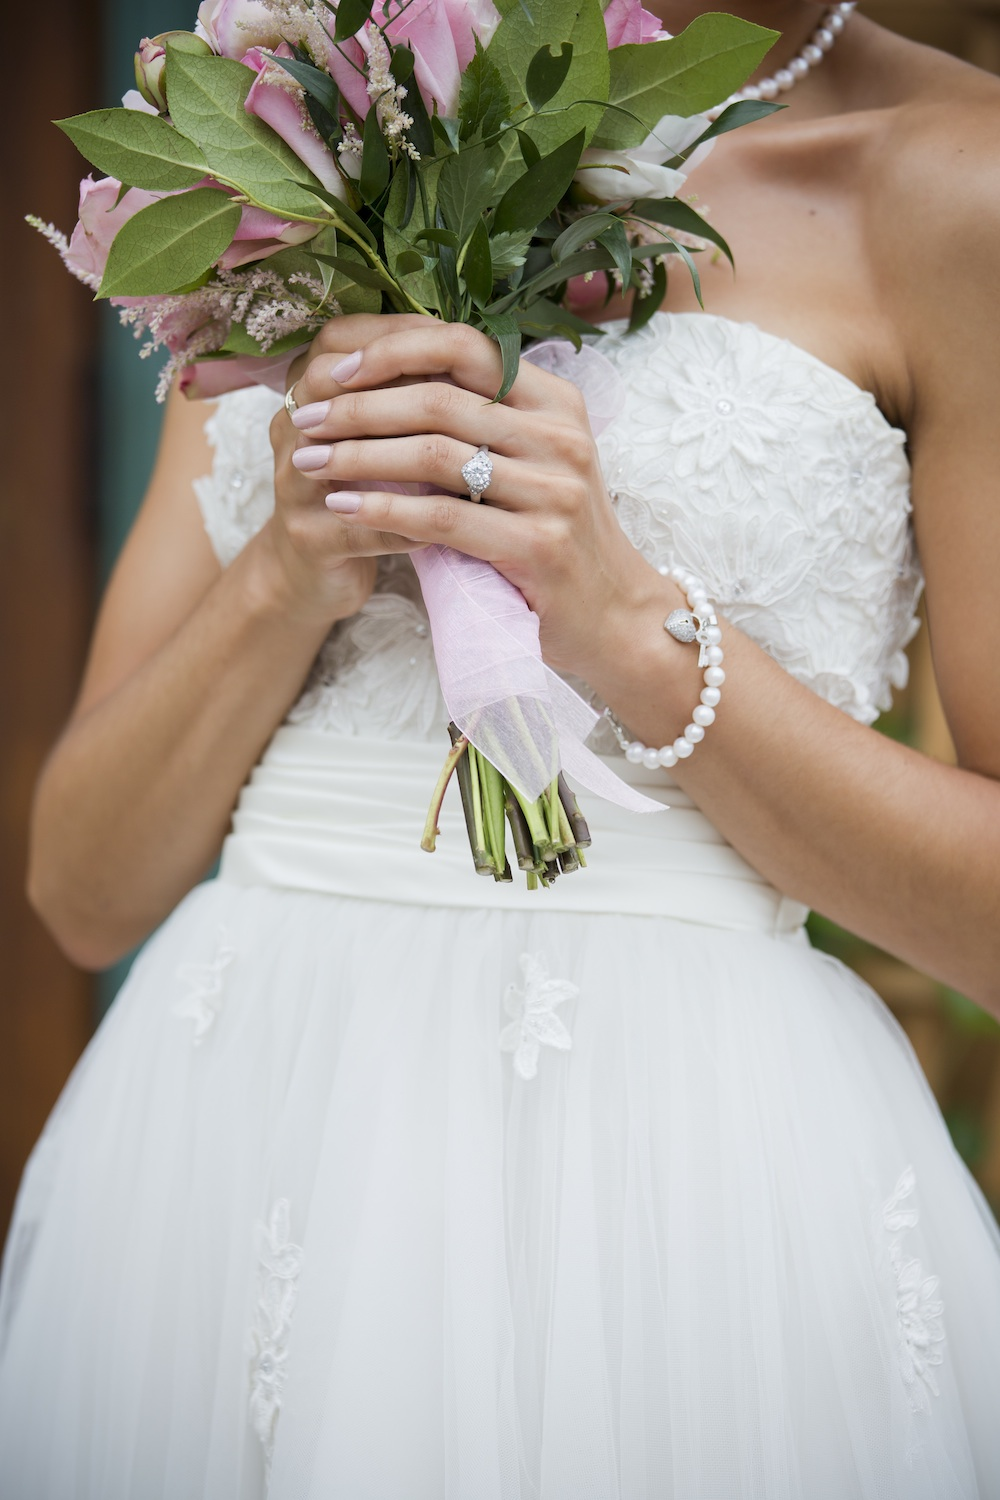 LOVE the Details on this Retro Style Wedding Dress from The Dress Matters / photo by Krista Patton Photography